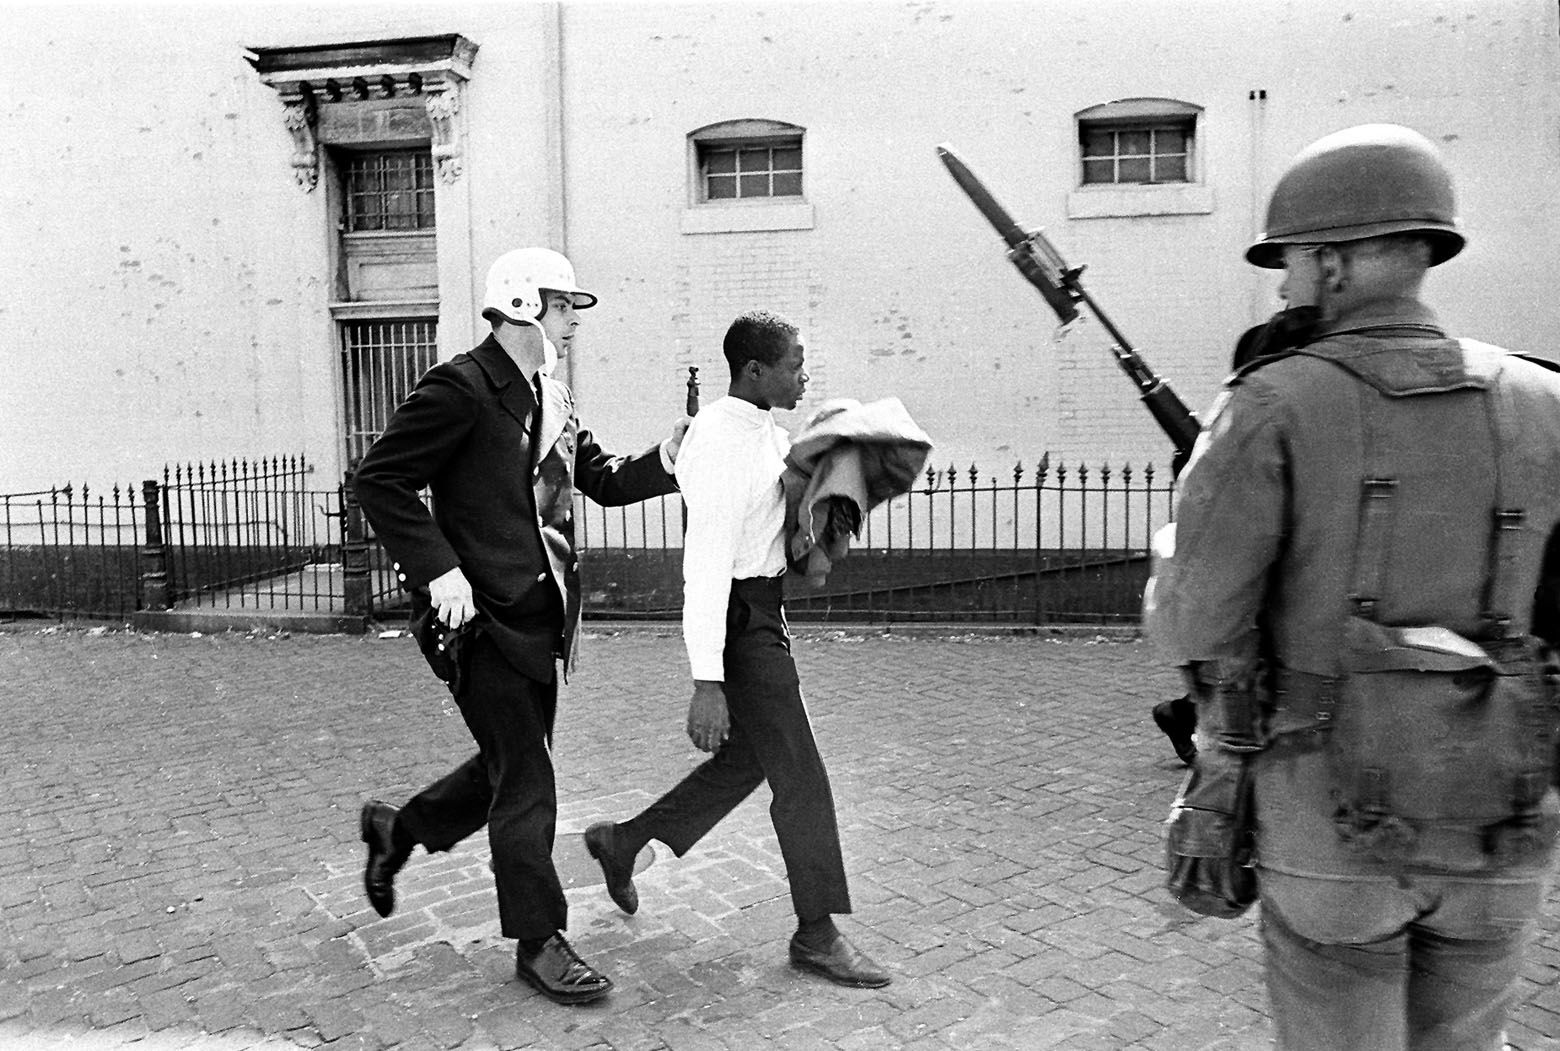 A Washington policeman, his hand near his gun, leads away a looter after arresting him near 7th and K Sts. in northwest Washington, D.C. on April 6, 1968. A U.S. Army trooper stands at right. Rioting broke out after the assassination of civil rights leader Dr. Martin Luther King, Jr., in Memphis, Tenn. on April 4. (AP Photo)